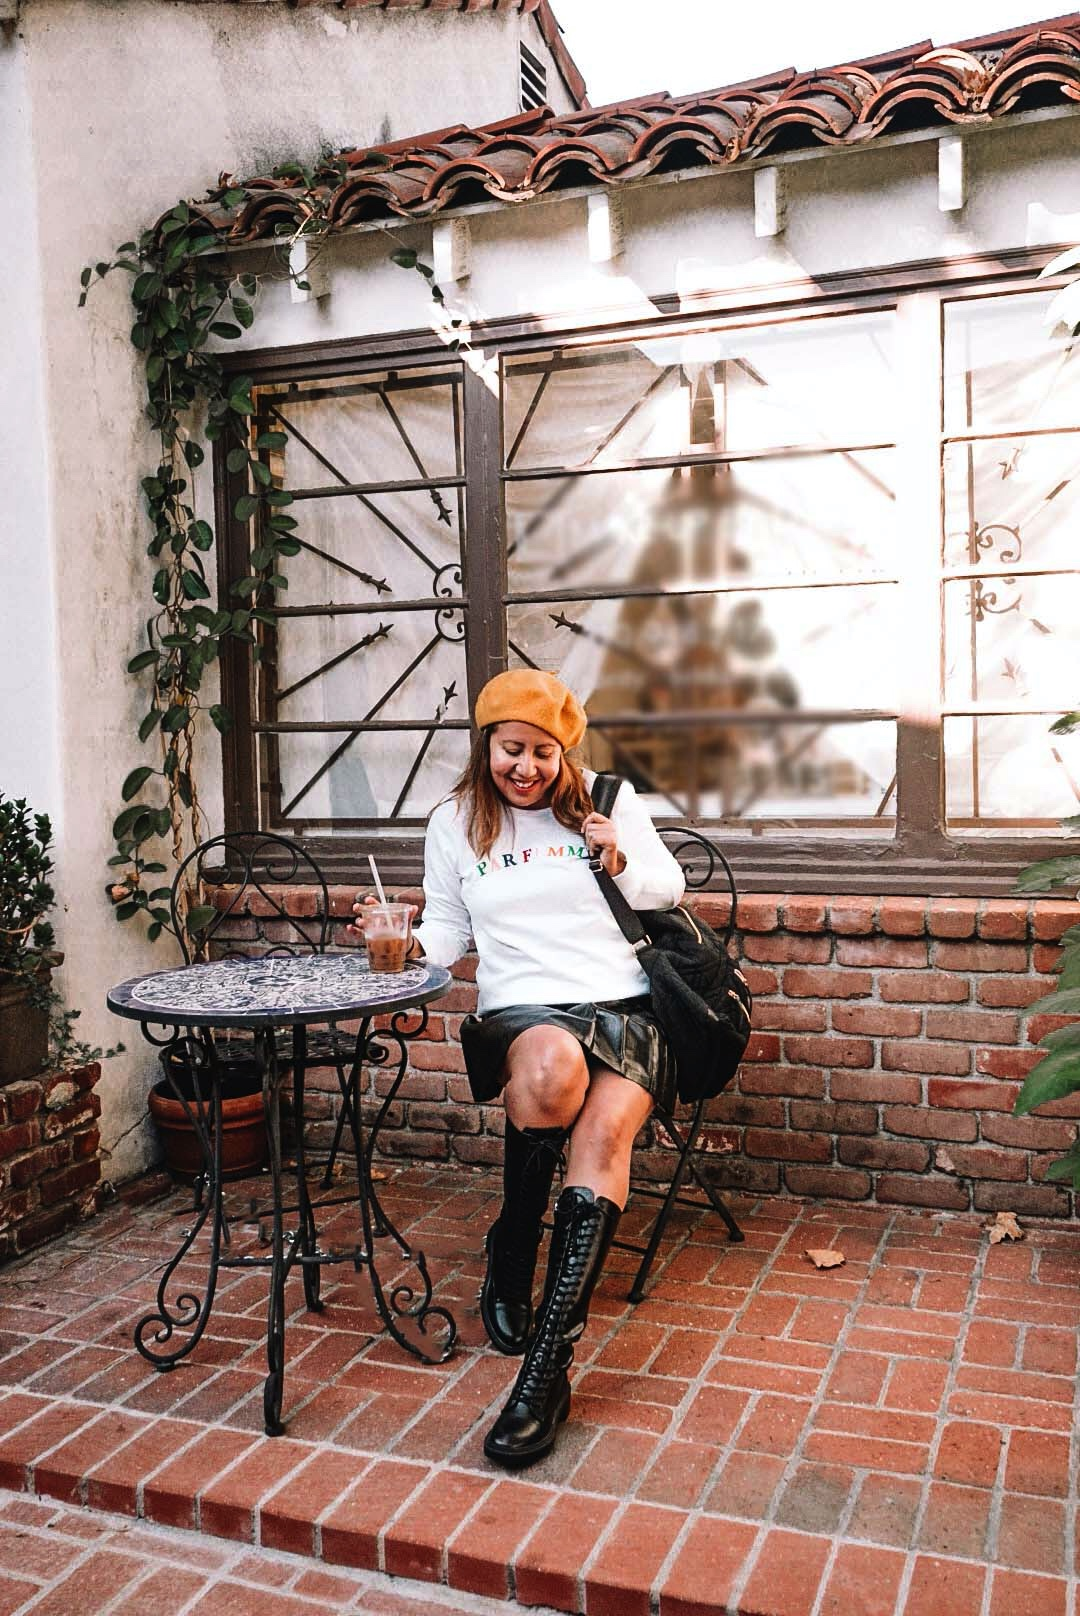 High combat boots and a Parisian style with yellow beret.